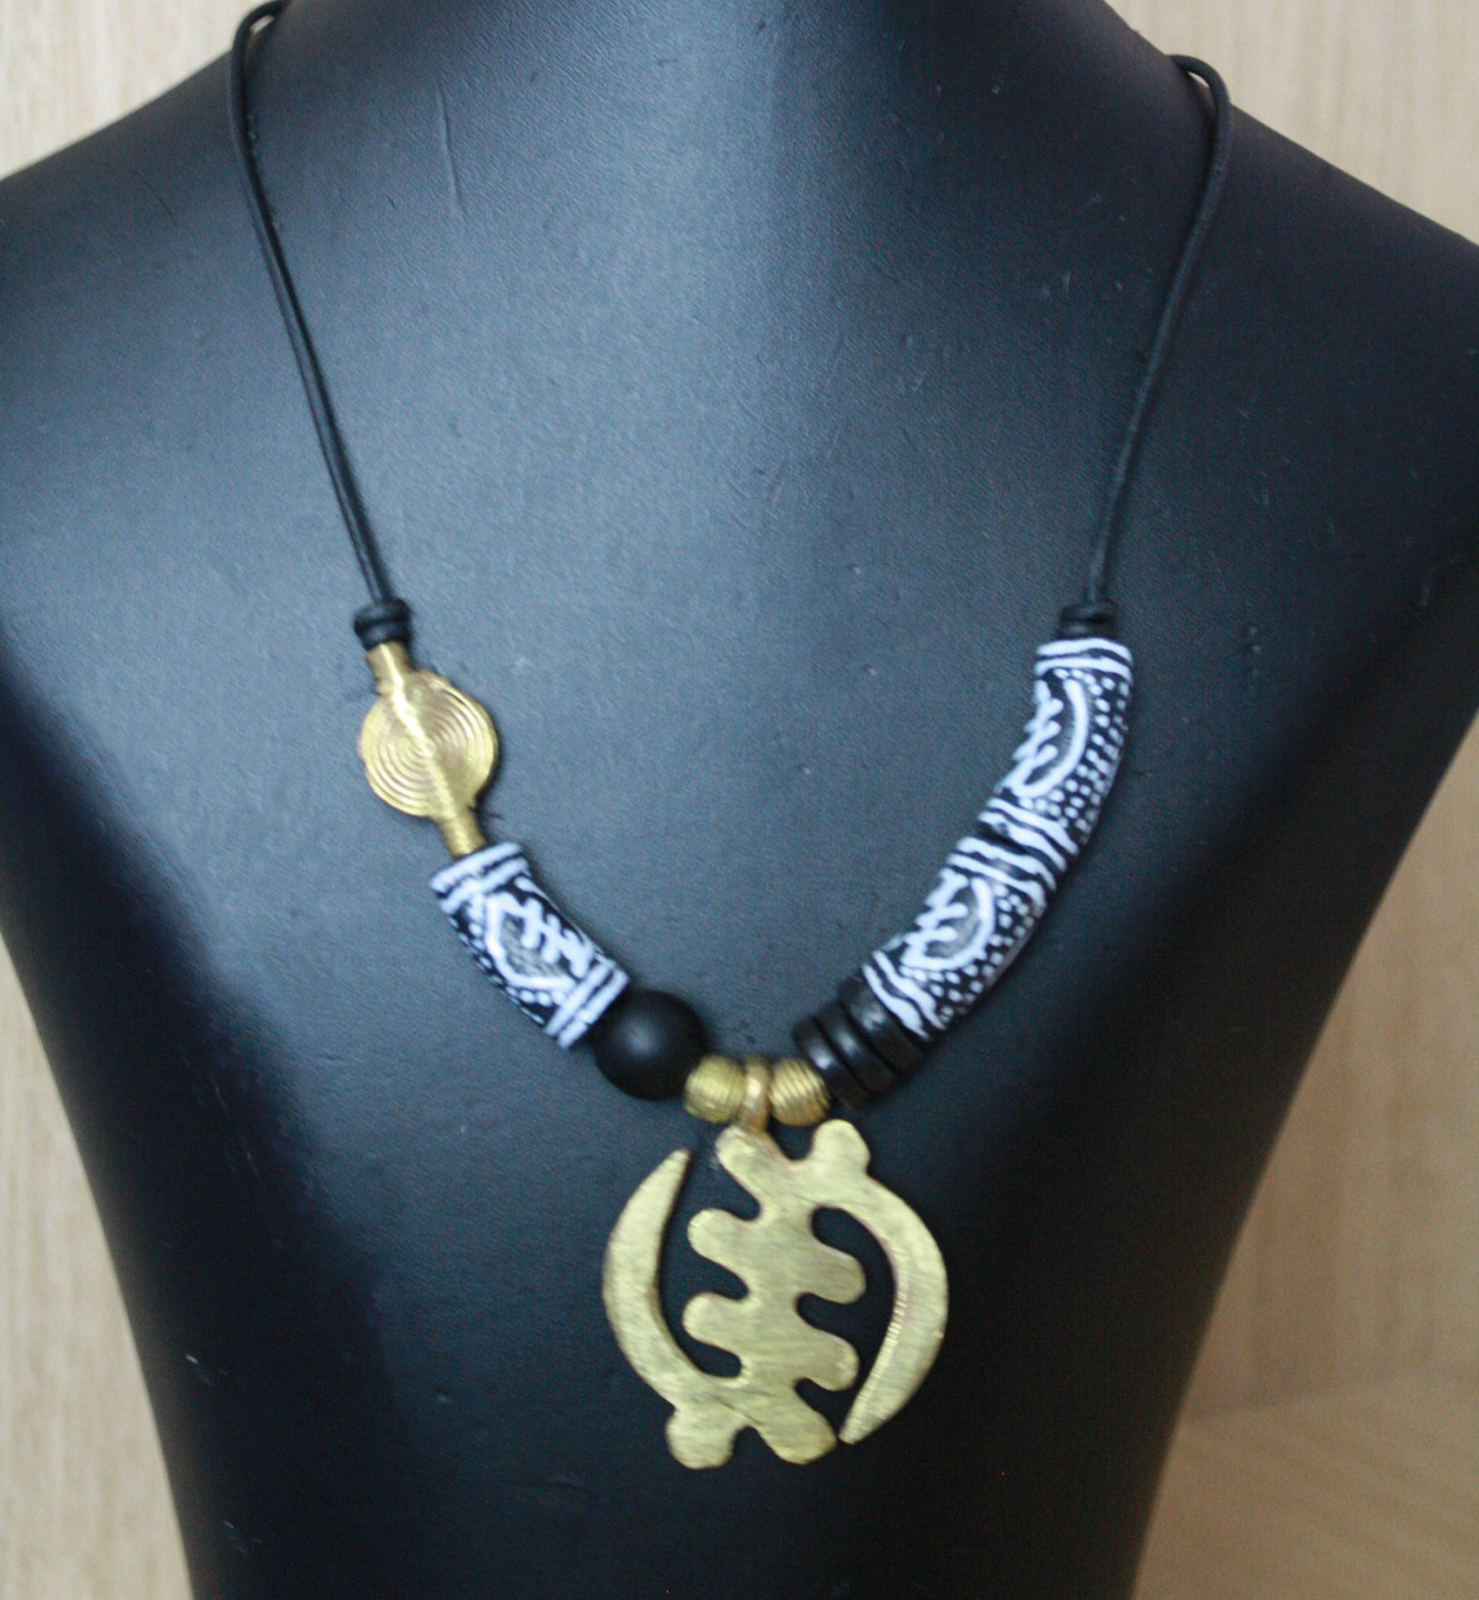 African-Leather-Adinkra-Necklace-with-Recycled-Glass-Beads-and-Adinkra-Gye-Nyame-Pendant-2